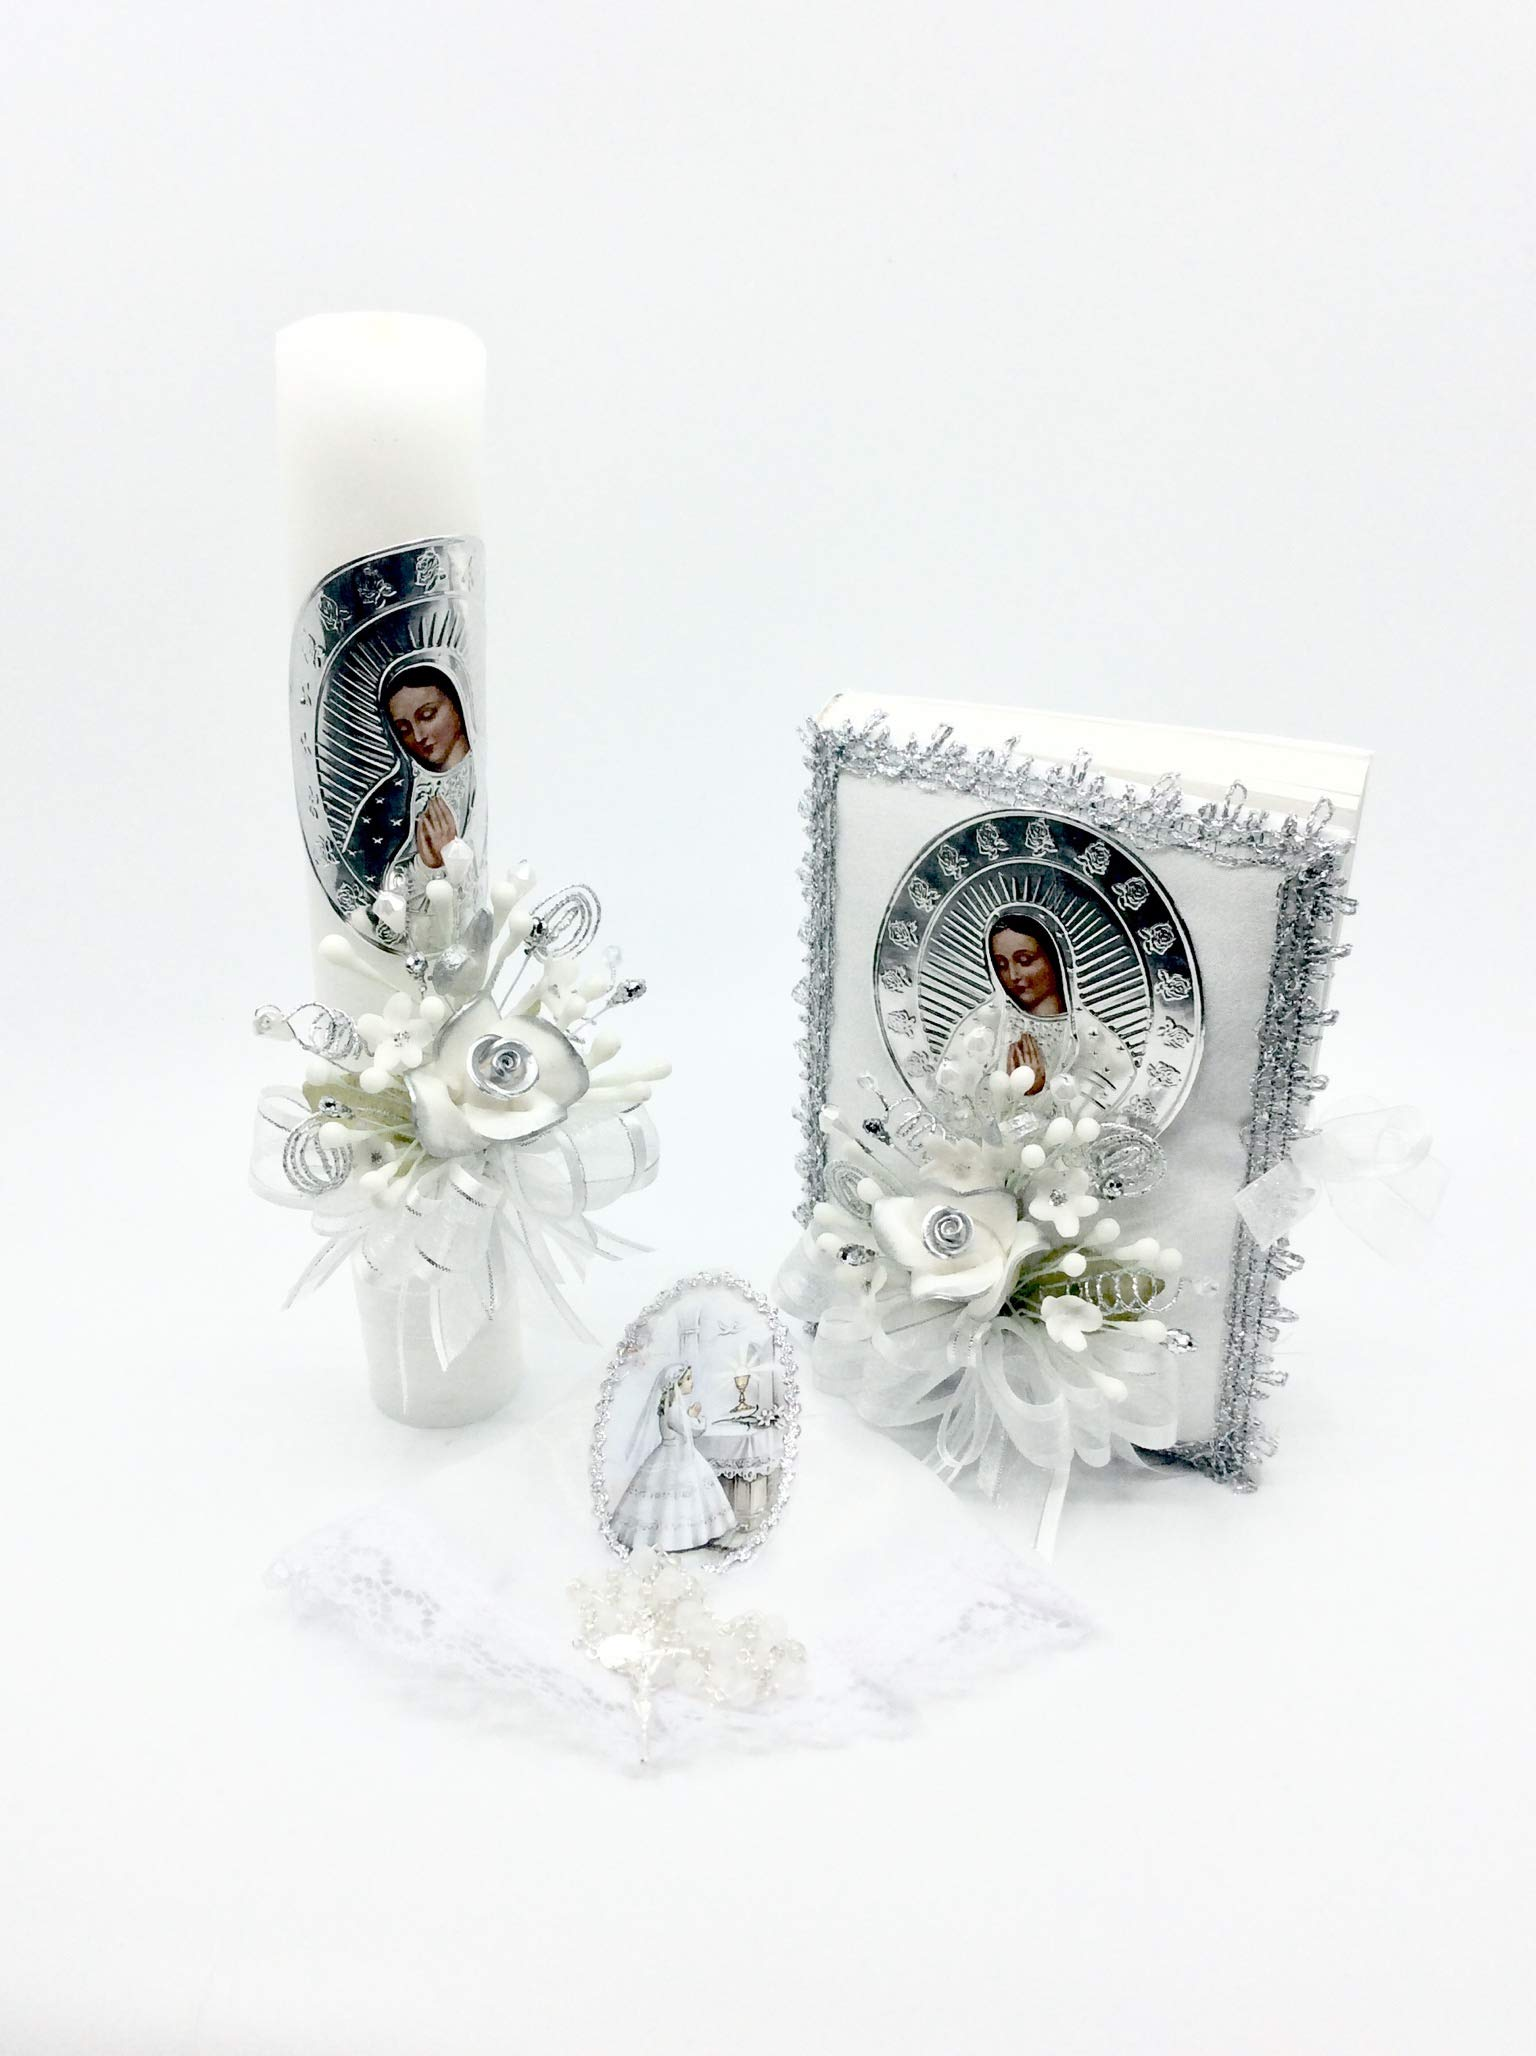 Casa Ixta First Communion Candle Lady of Guadalupe Image by Casa Ixta (Image #1)